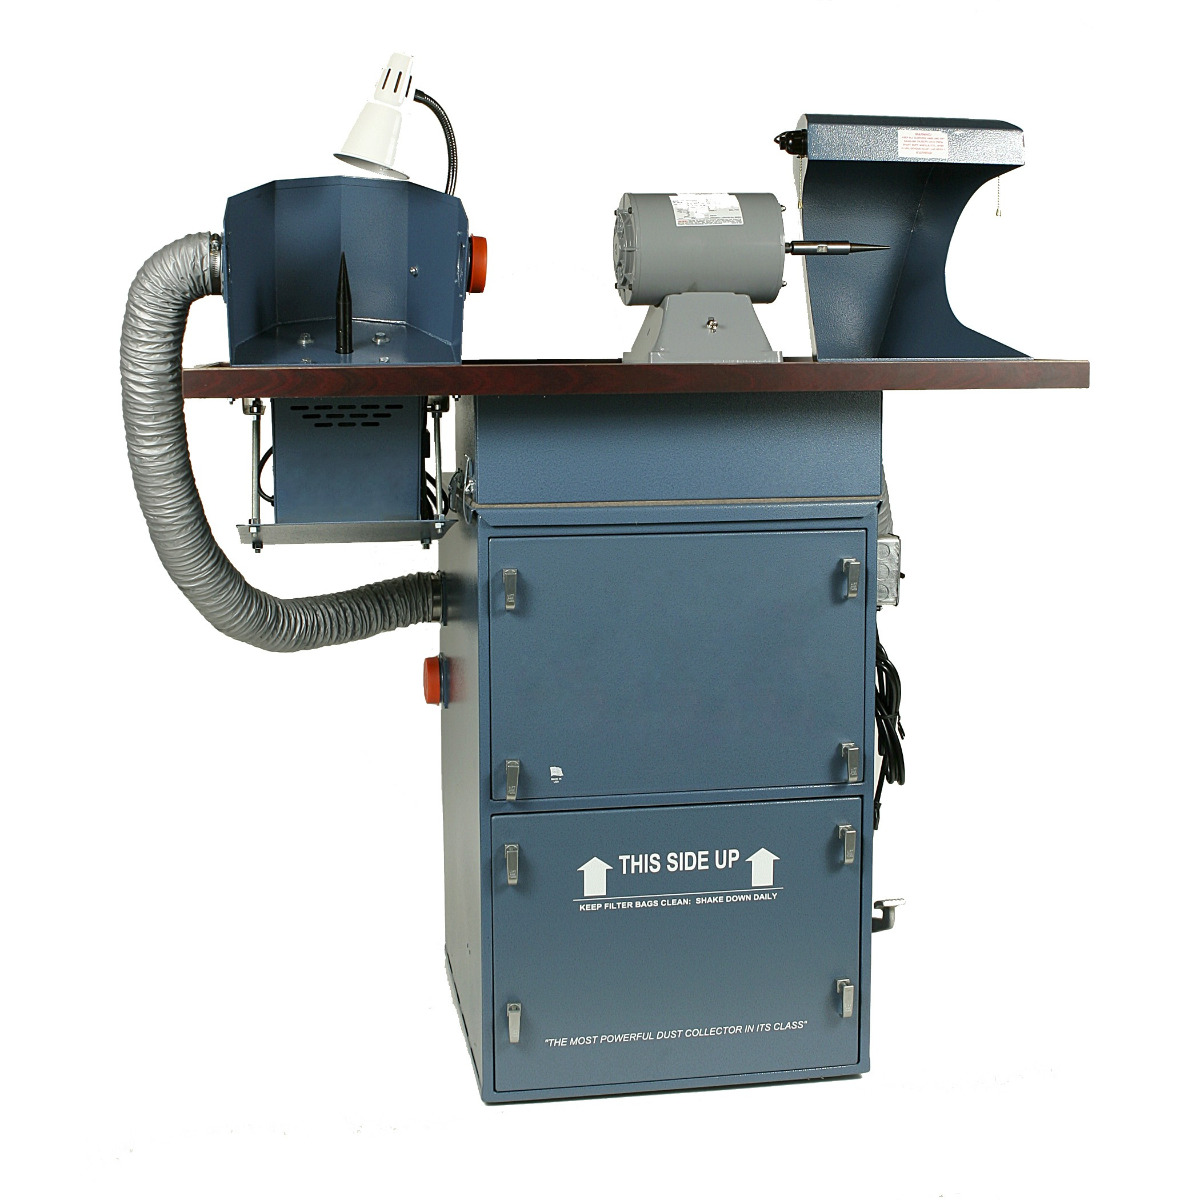 Romanoff 1 HP Stand-Up Polishing Station Combo 110V / 220V